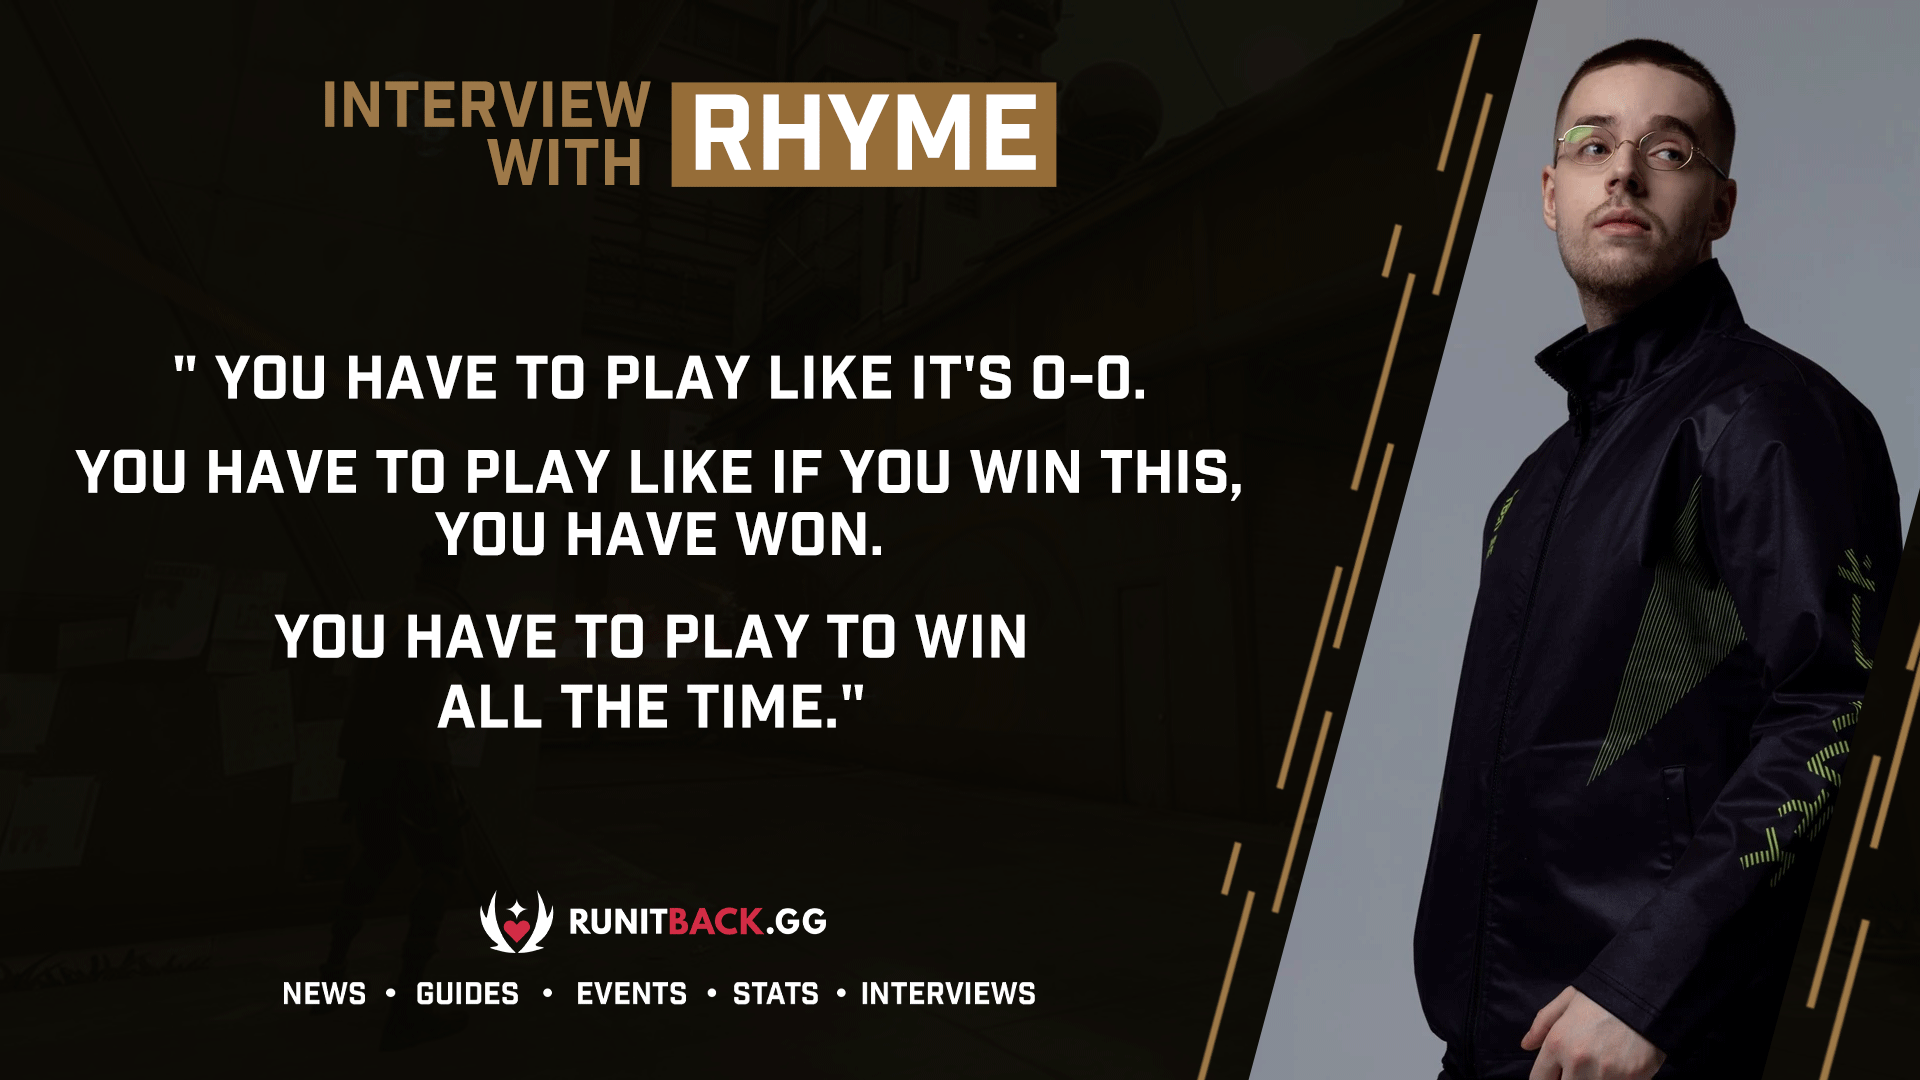 Ninjas in Pyjamas' rhyme on team mentality, Sheriff eco rounds, and matchup against Acend